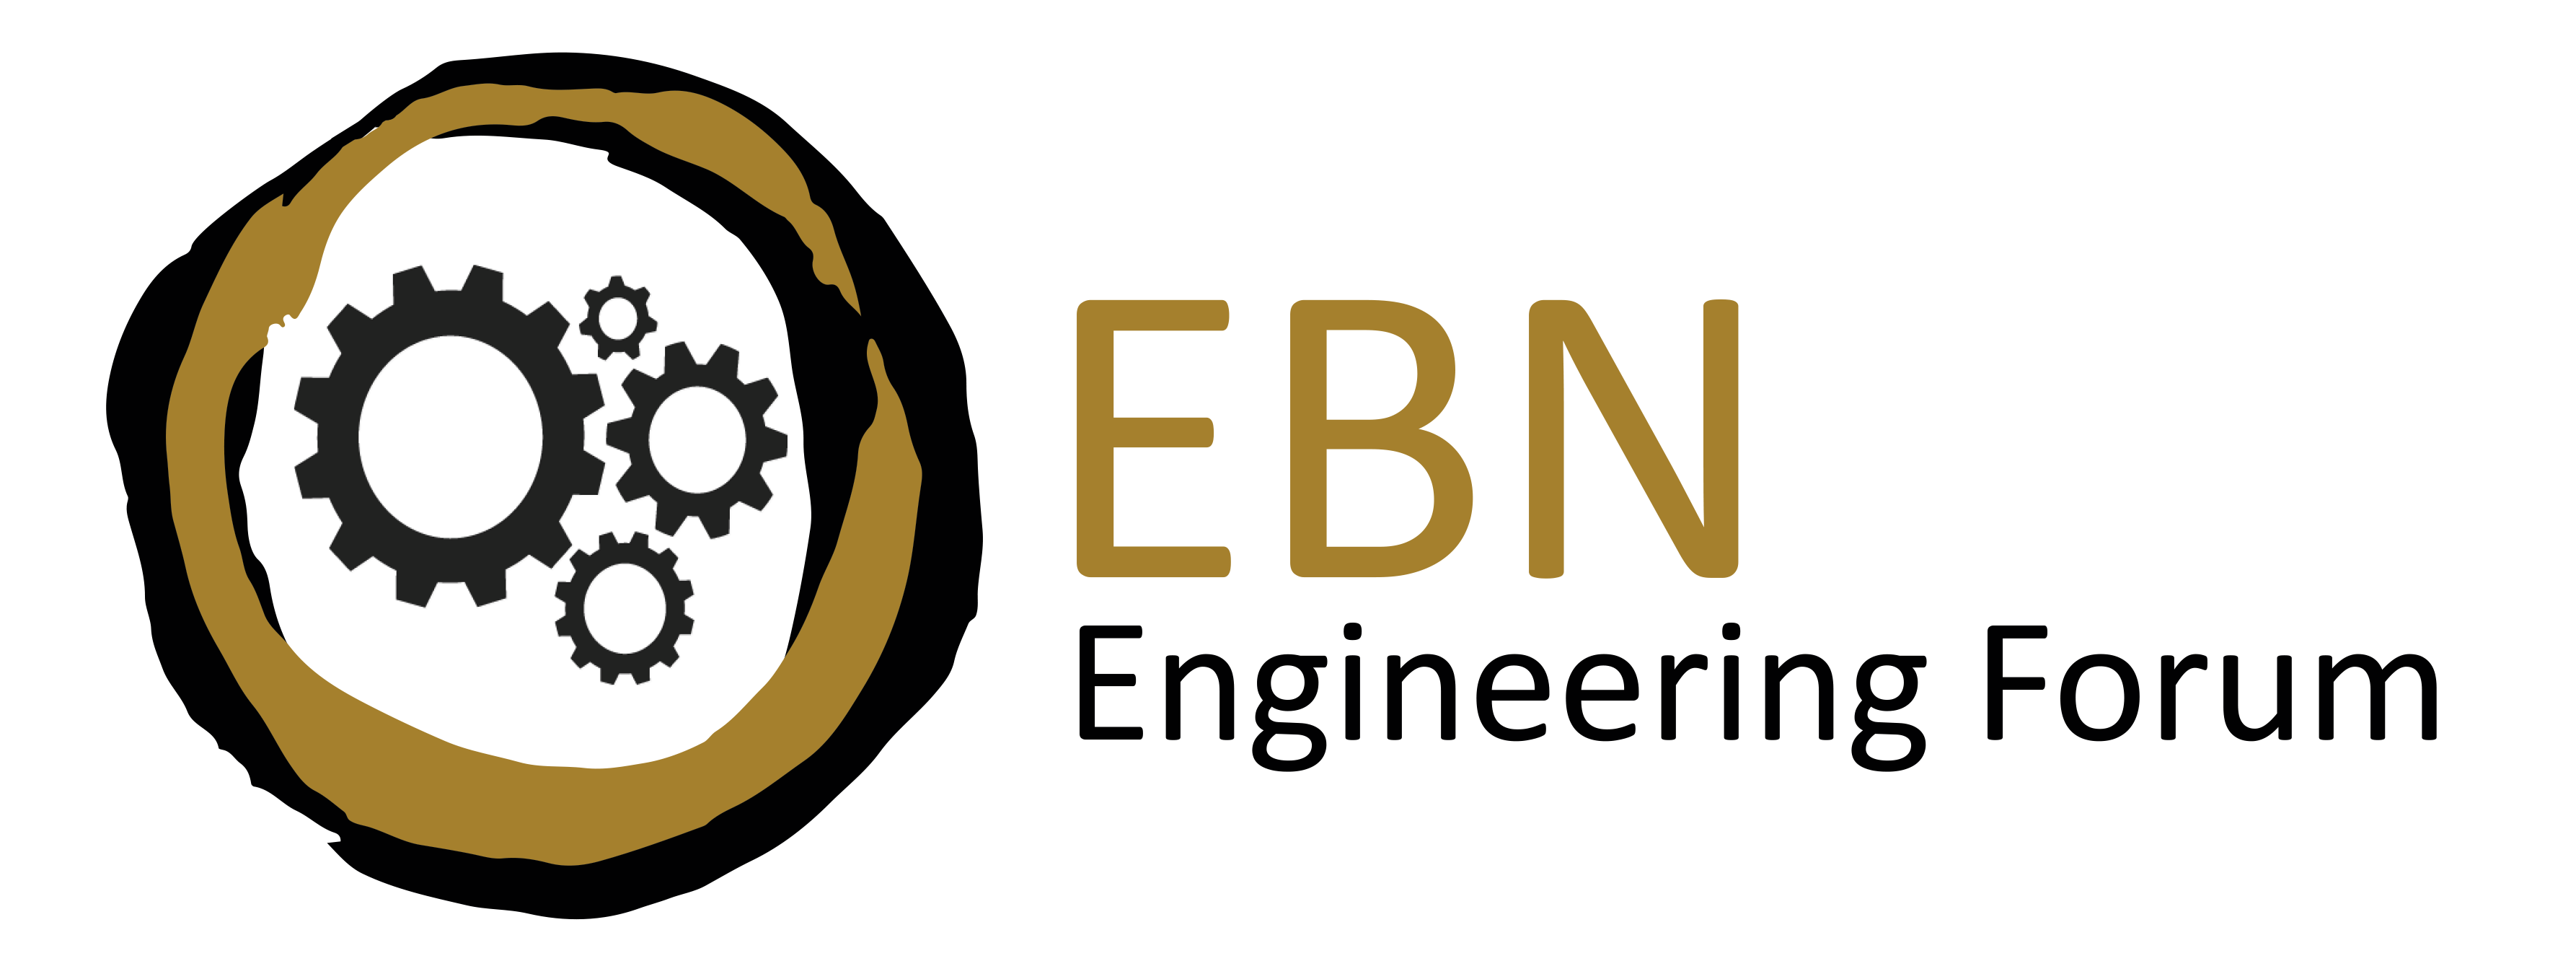 EBN ENGINEERING LOGO